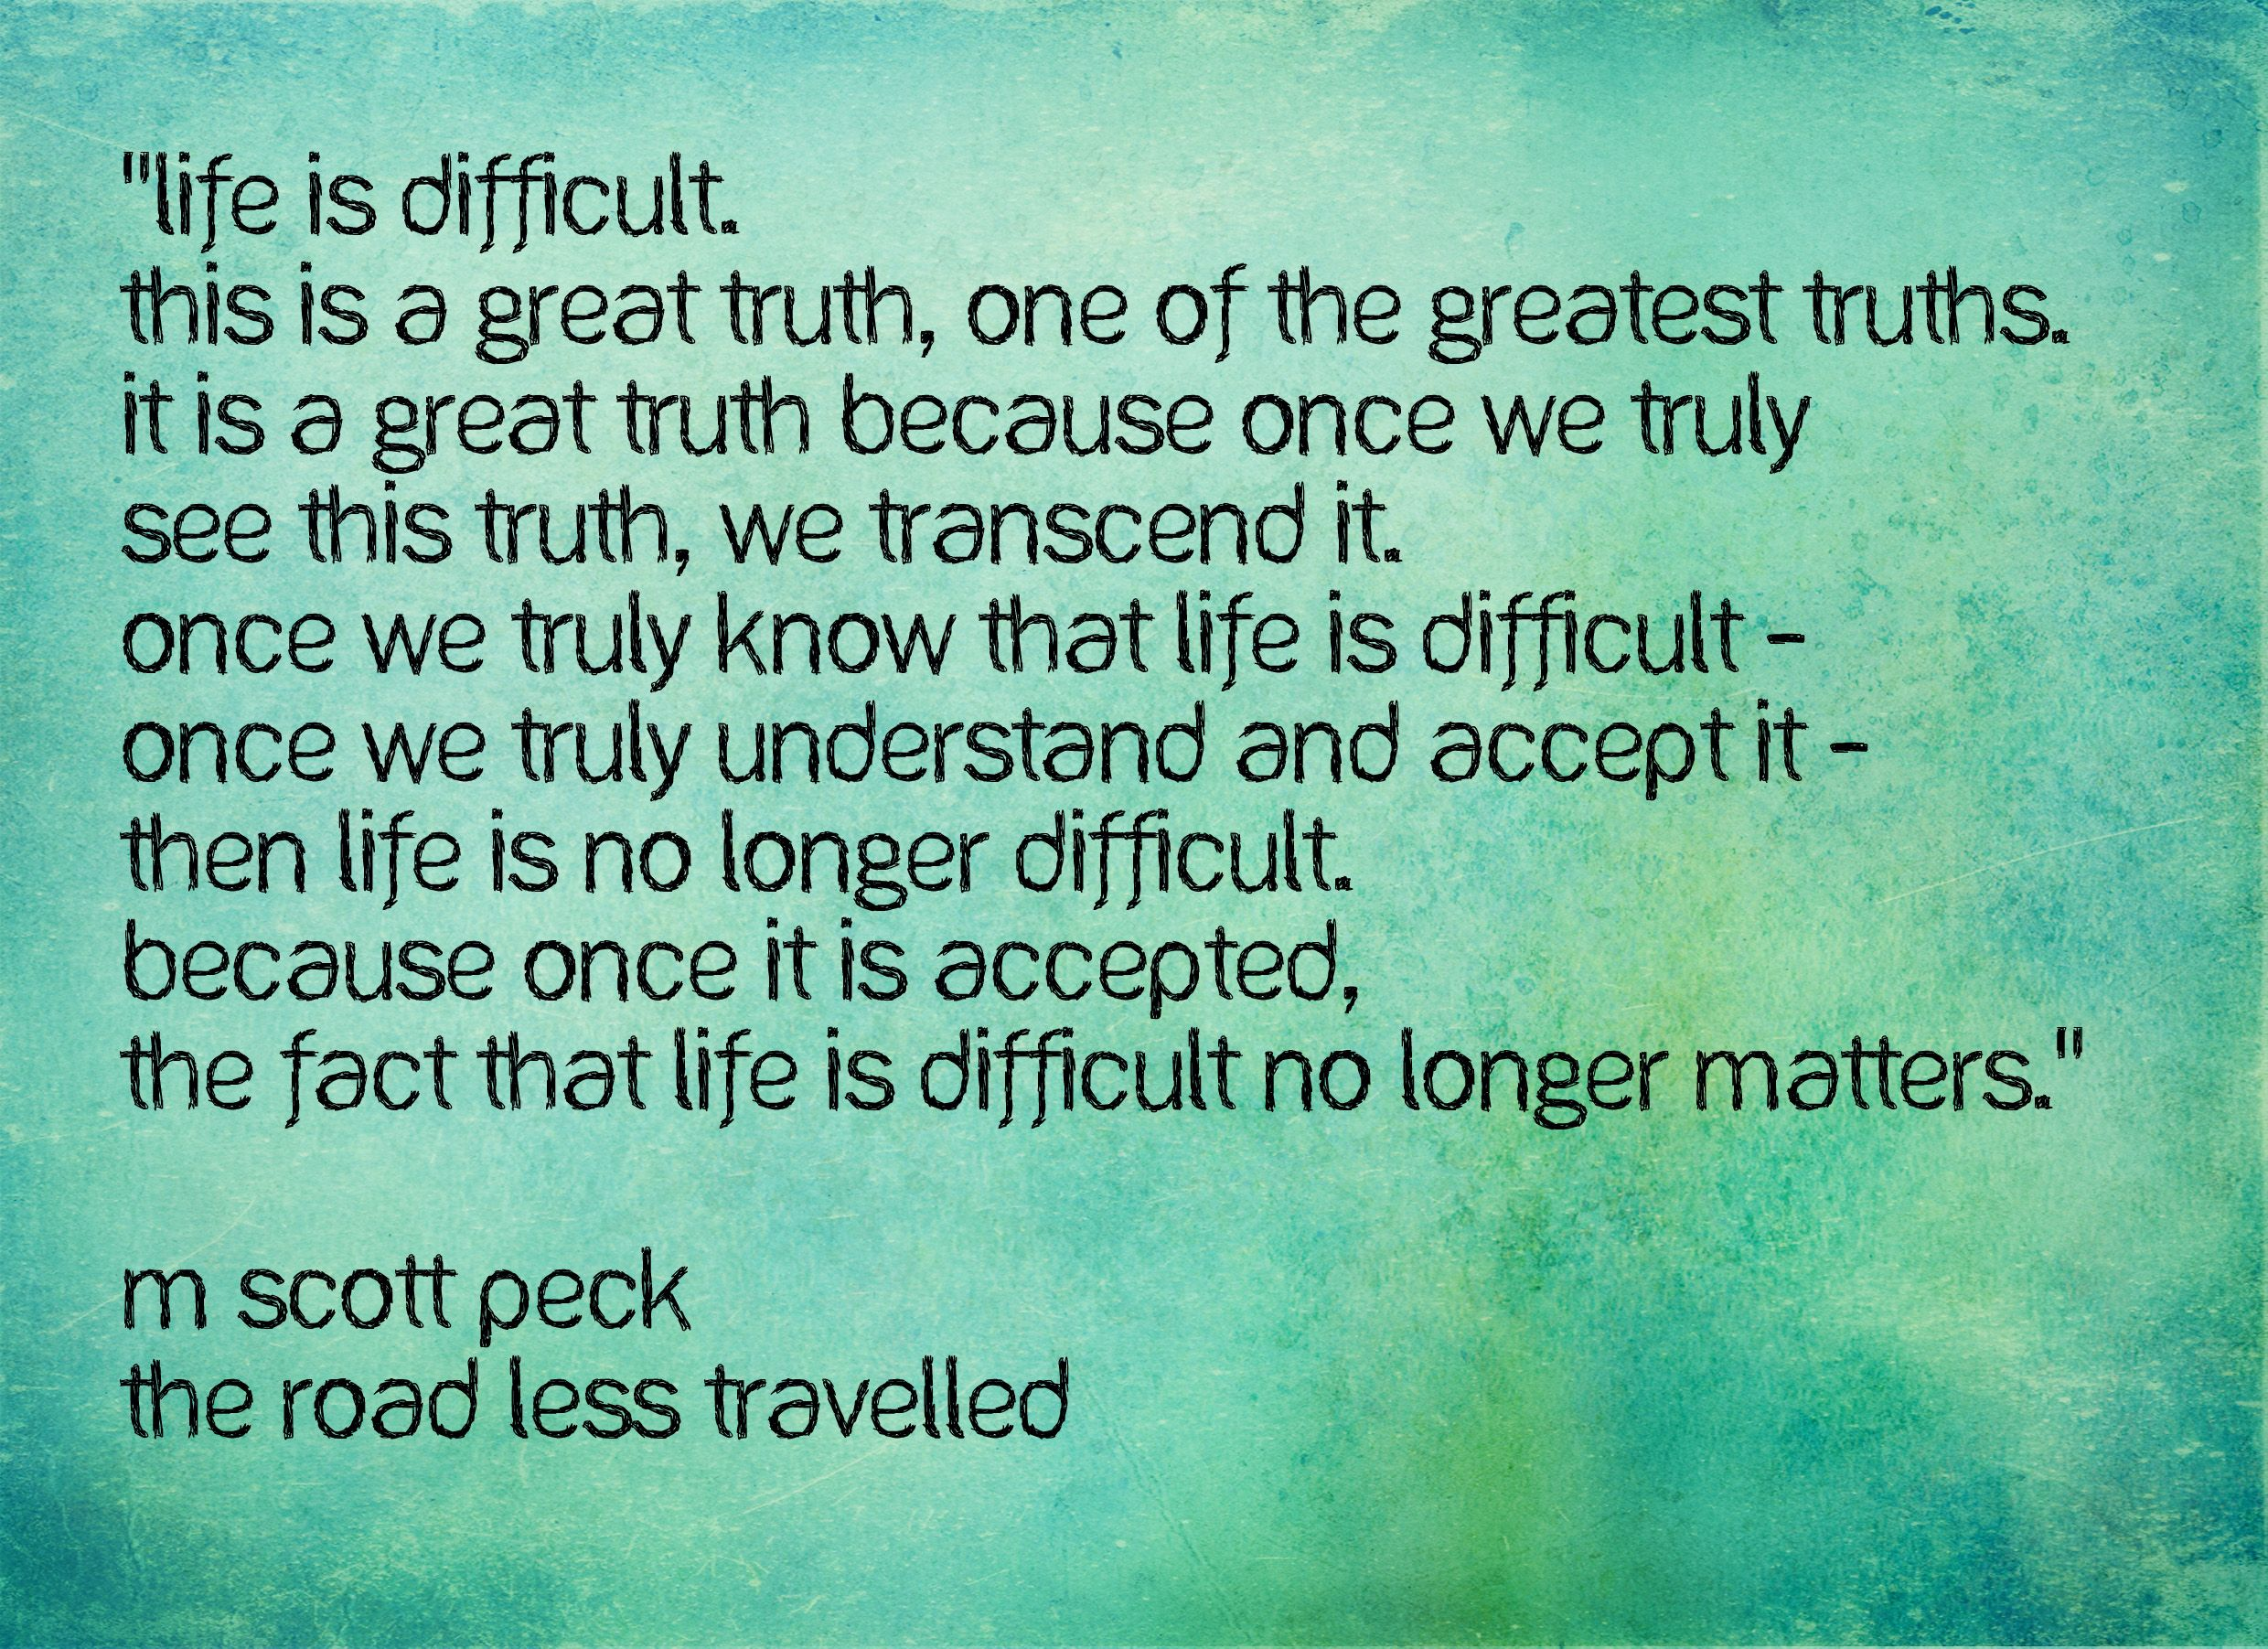 Life is difficult quote, M. Scott Peck The Road Less Travelled